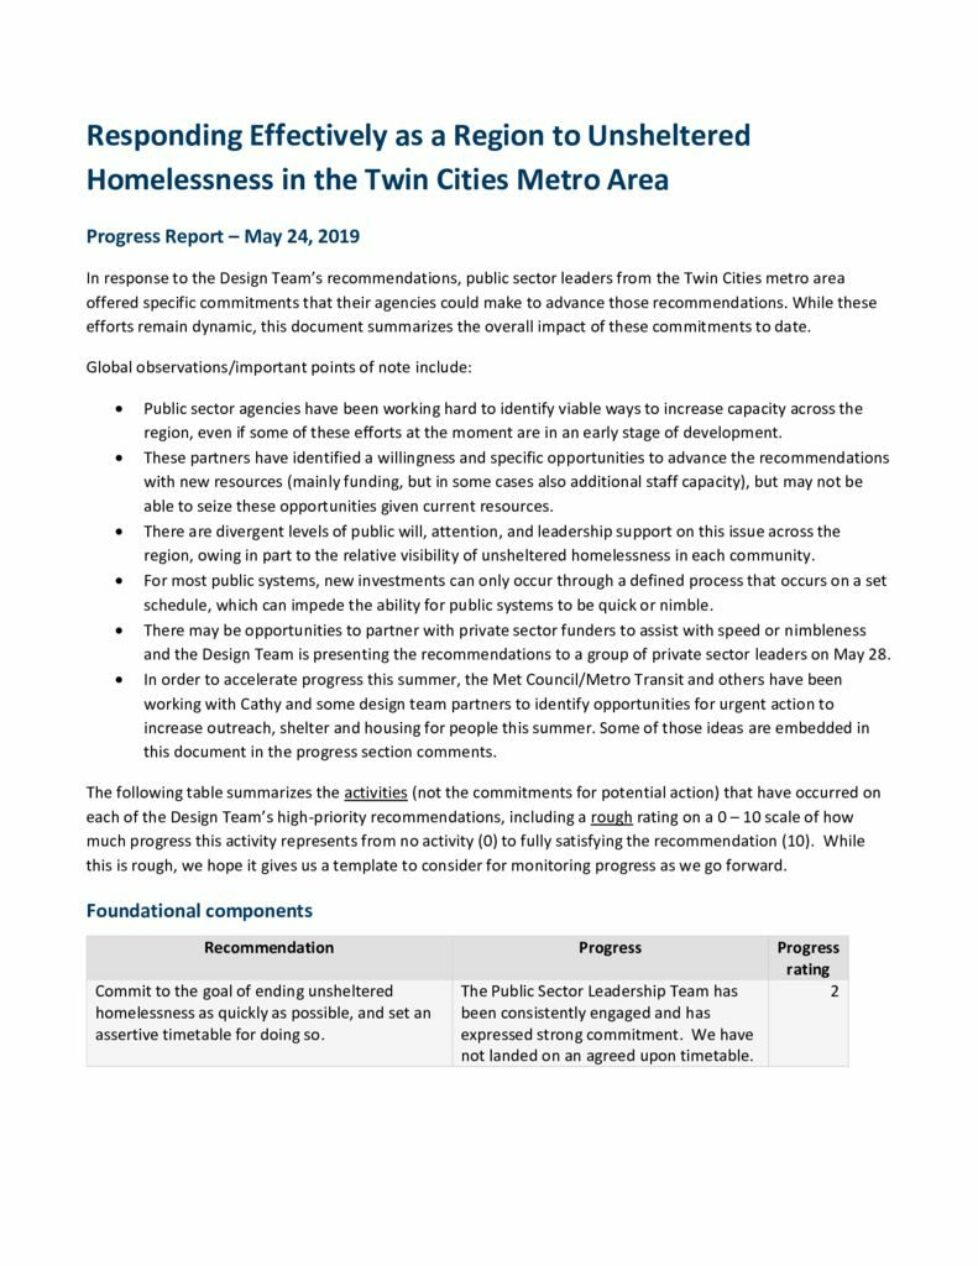 thumbnail of May 2019 Responding Effectively as a Region to Unsheltered Homelessness in the Twin Cities Metro Area_Progress report_May 2019 _for Design Team